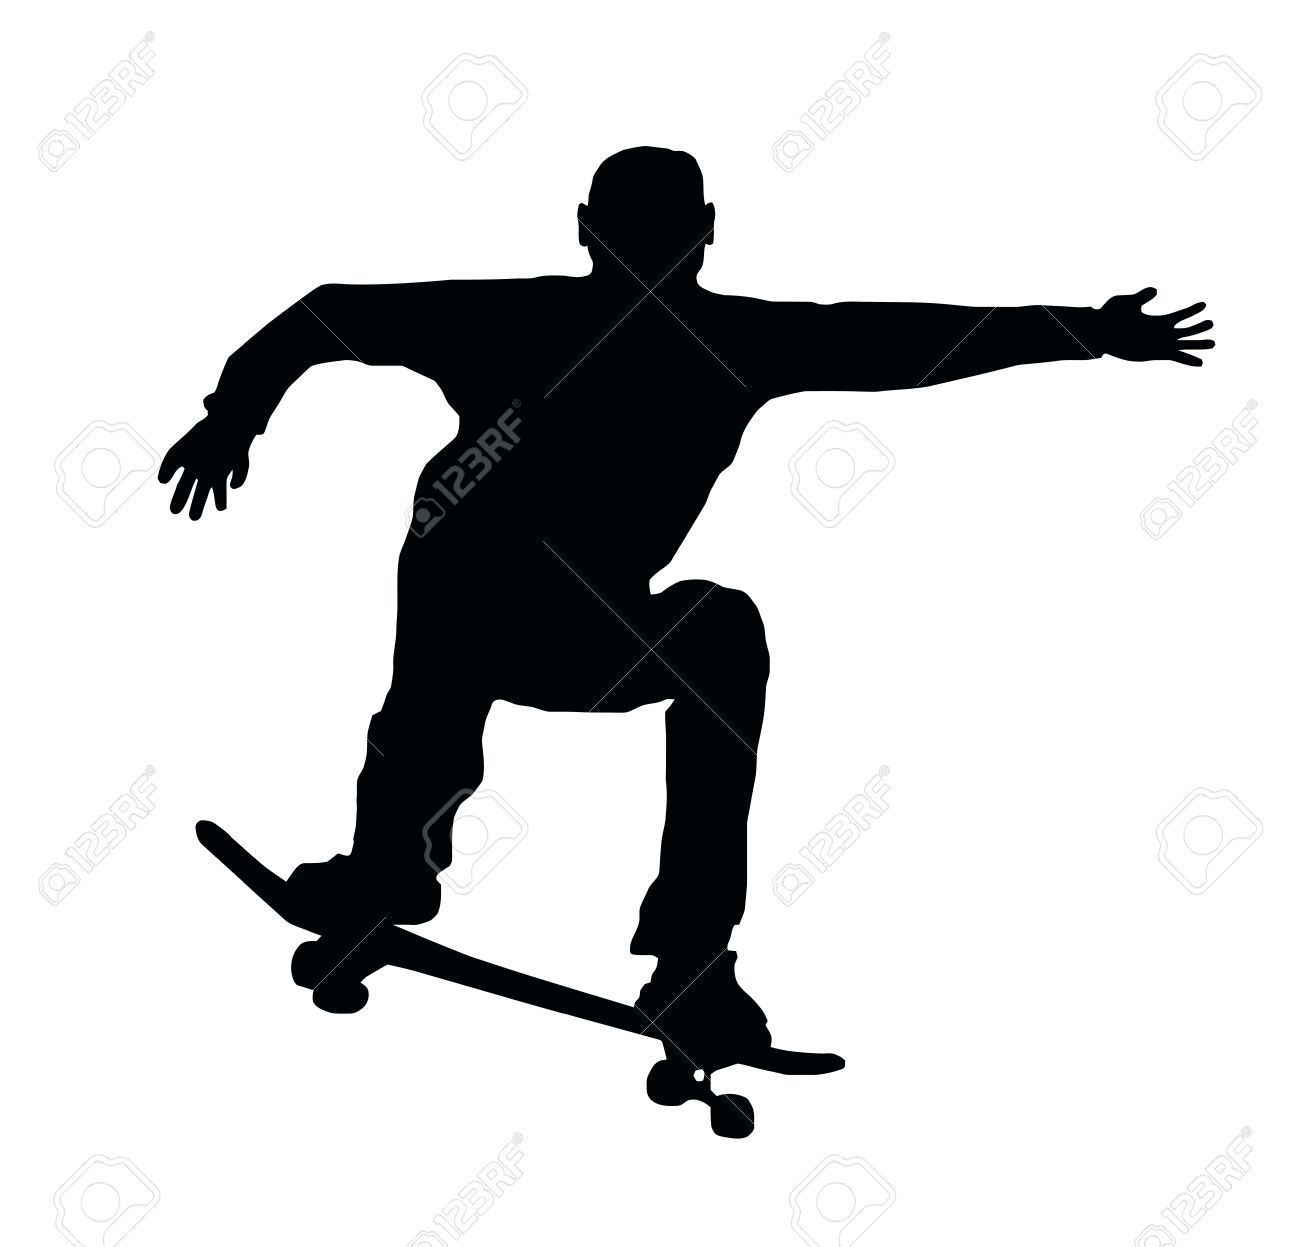 11426199-Skateboarding-Skater-do-Ollie-Jump-with-Board ...